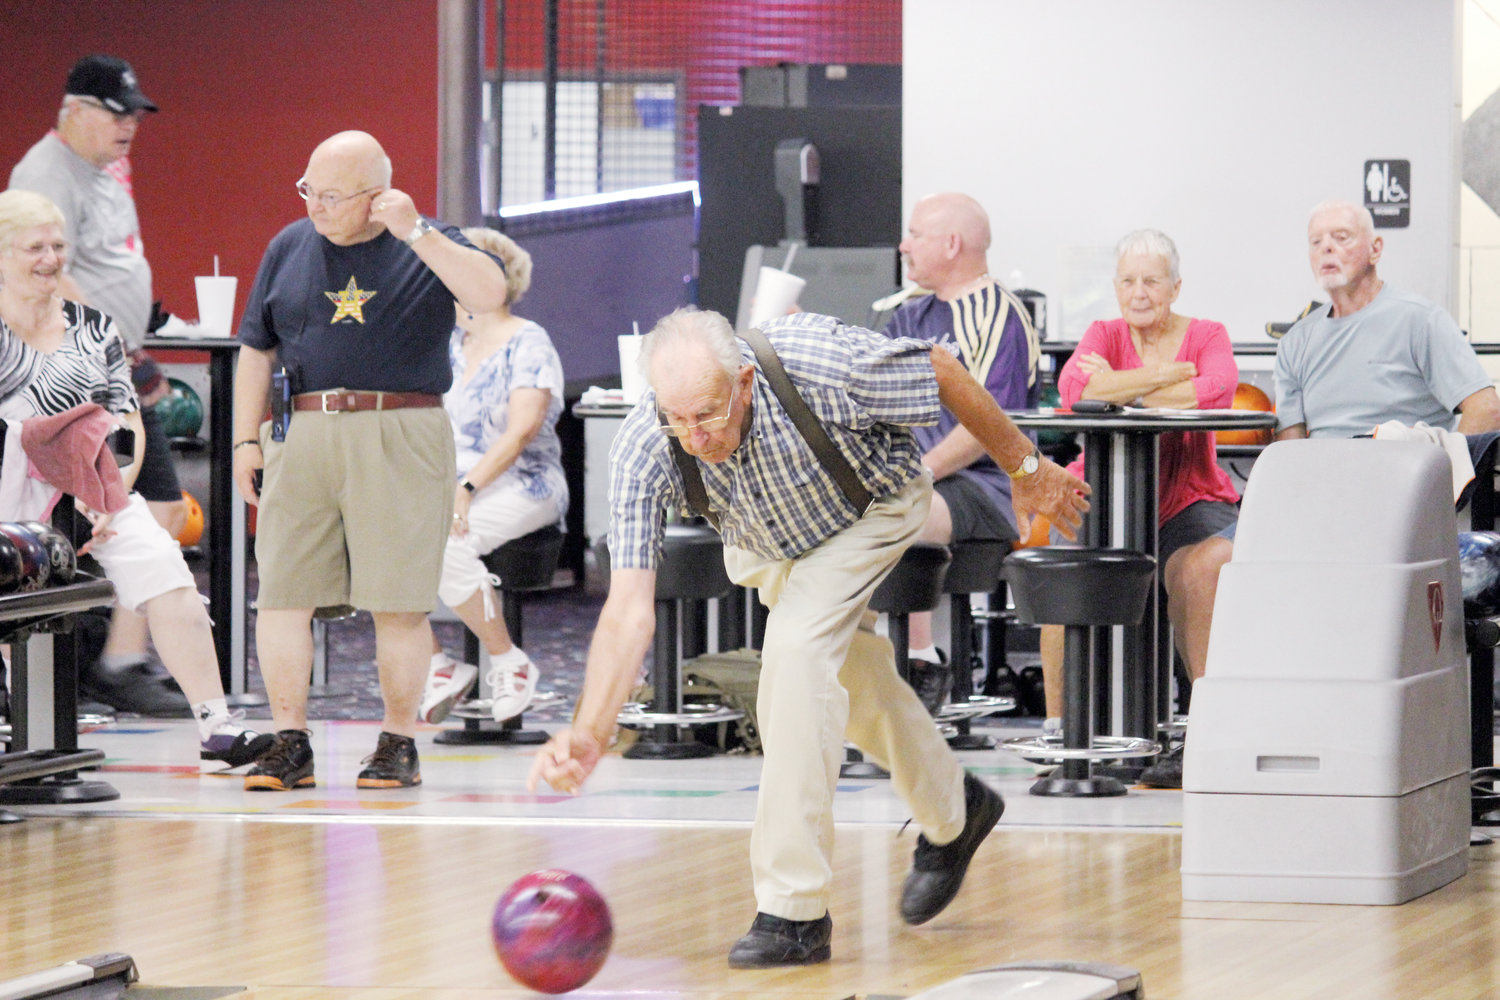 Lawrence Rogers gets down low to bowl a strike at Buffaloe Lanes in Erwin on Monday.